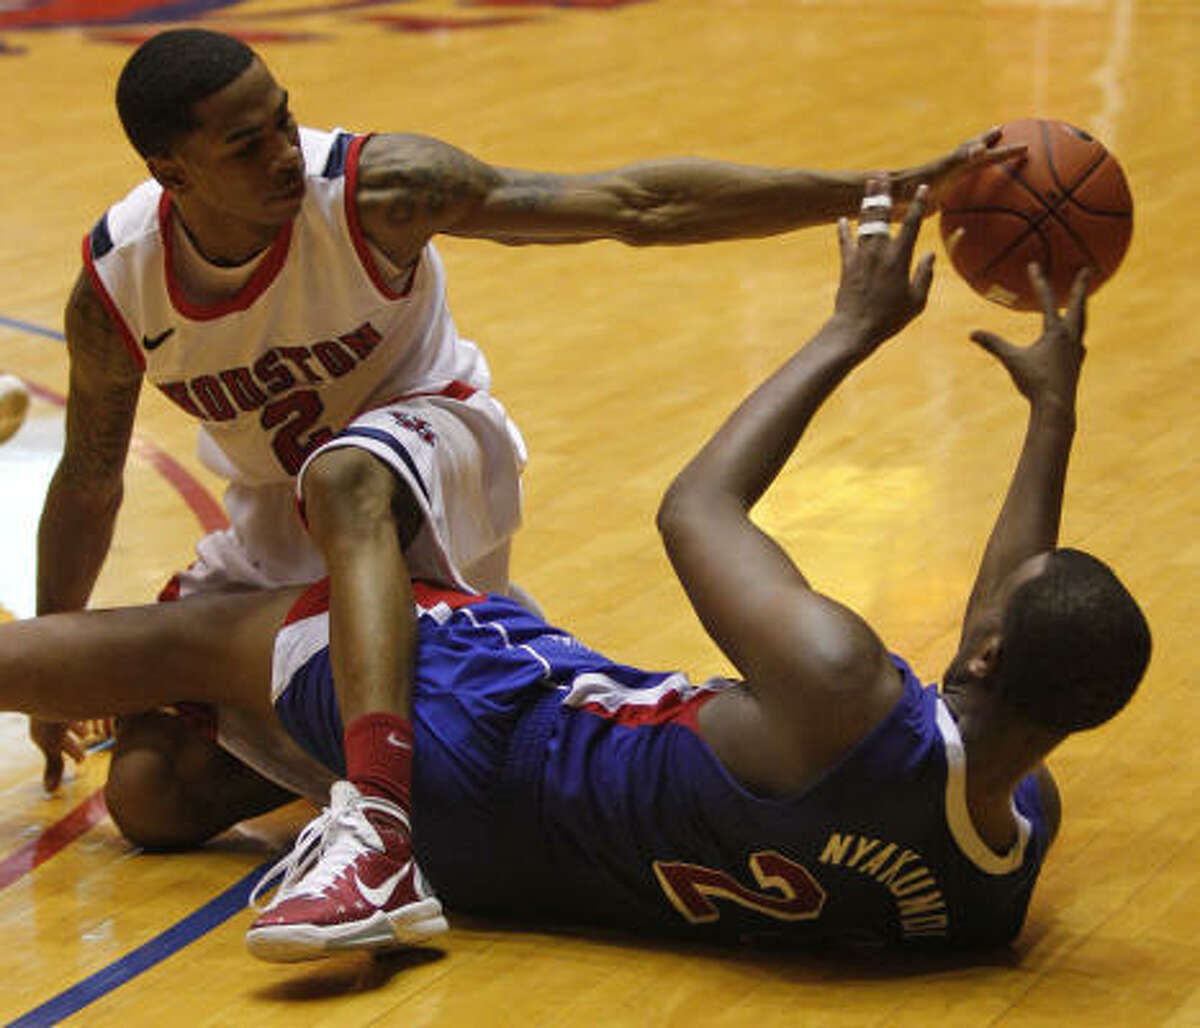 Feb. 16: SMU 65, UH 51 UH guard Zamal Nixon, left, and SMU's Robert Nyakundi scramble for a loose ball during the second half of Wednesday night's game at Hofheinz Pavilion. The Cougars were left scrambling after suffering their sixth loss in seven games and falling to 12-12.